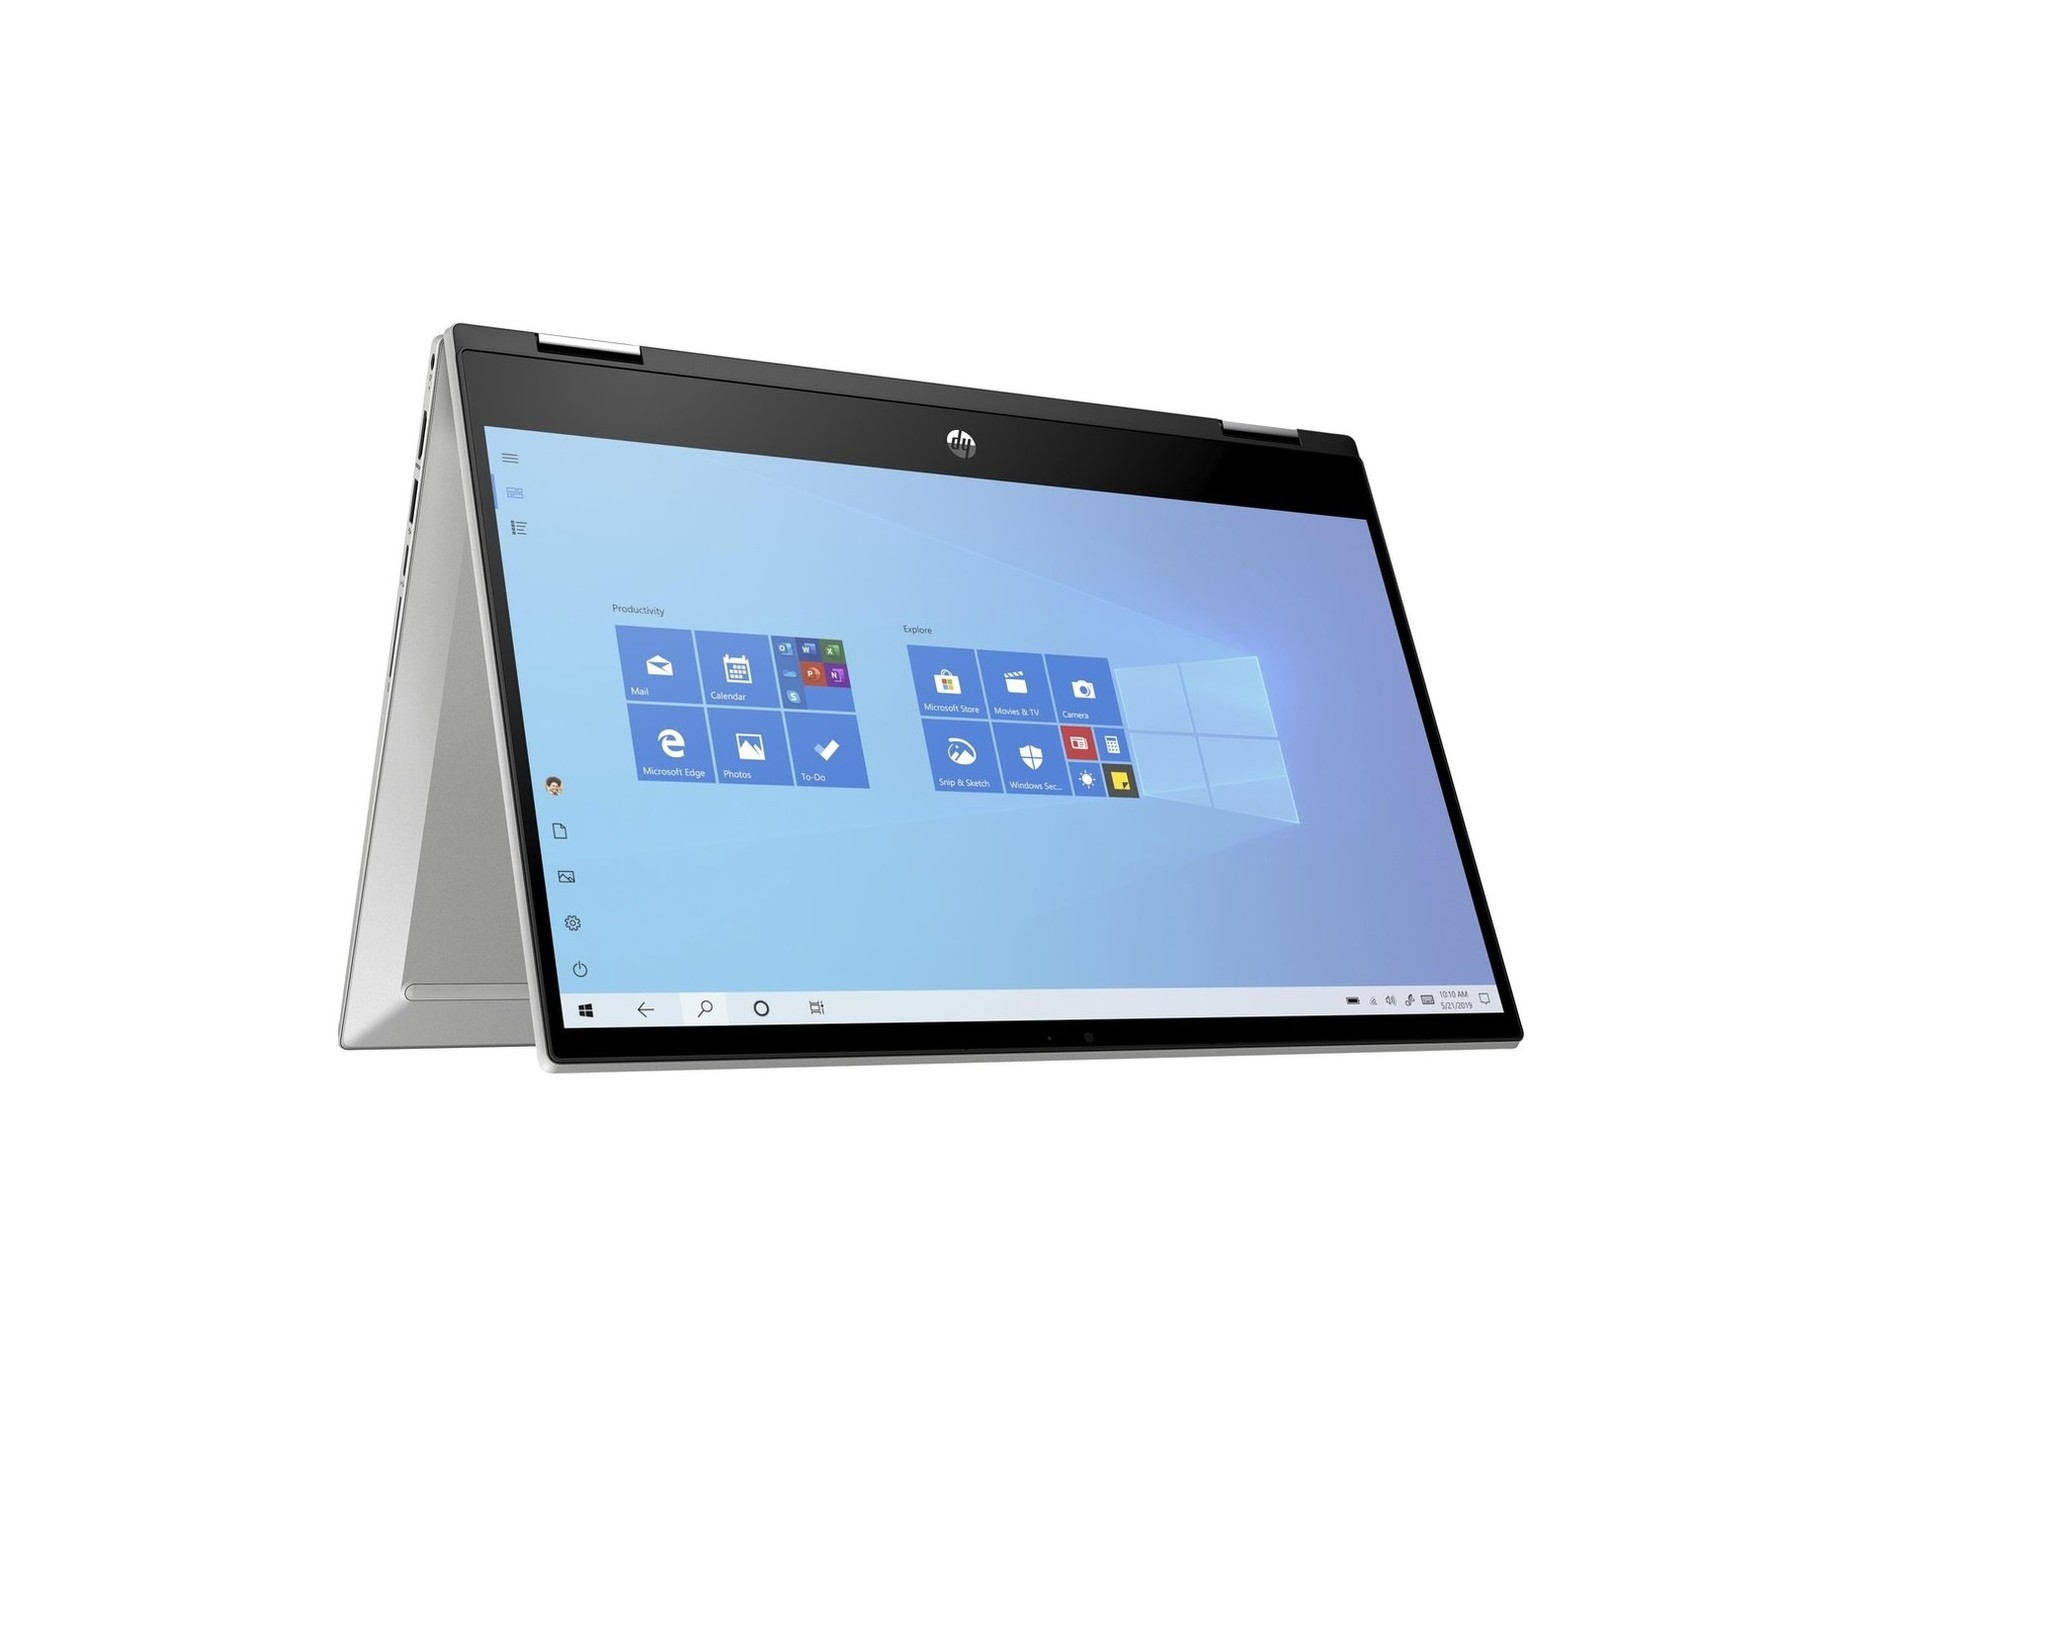 HP Pavilion x360 i3-1125G4 8Gb 256Gb 14 inch touch laptop